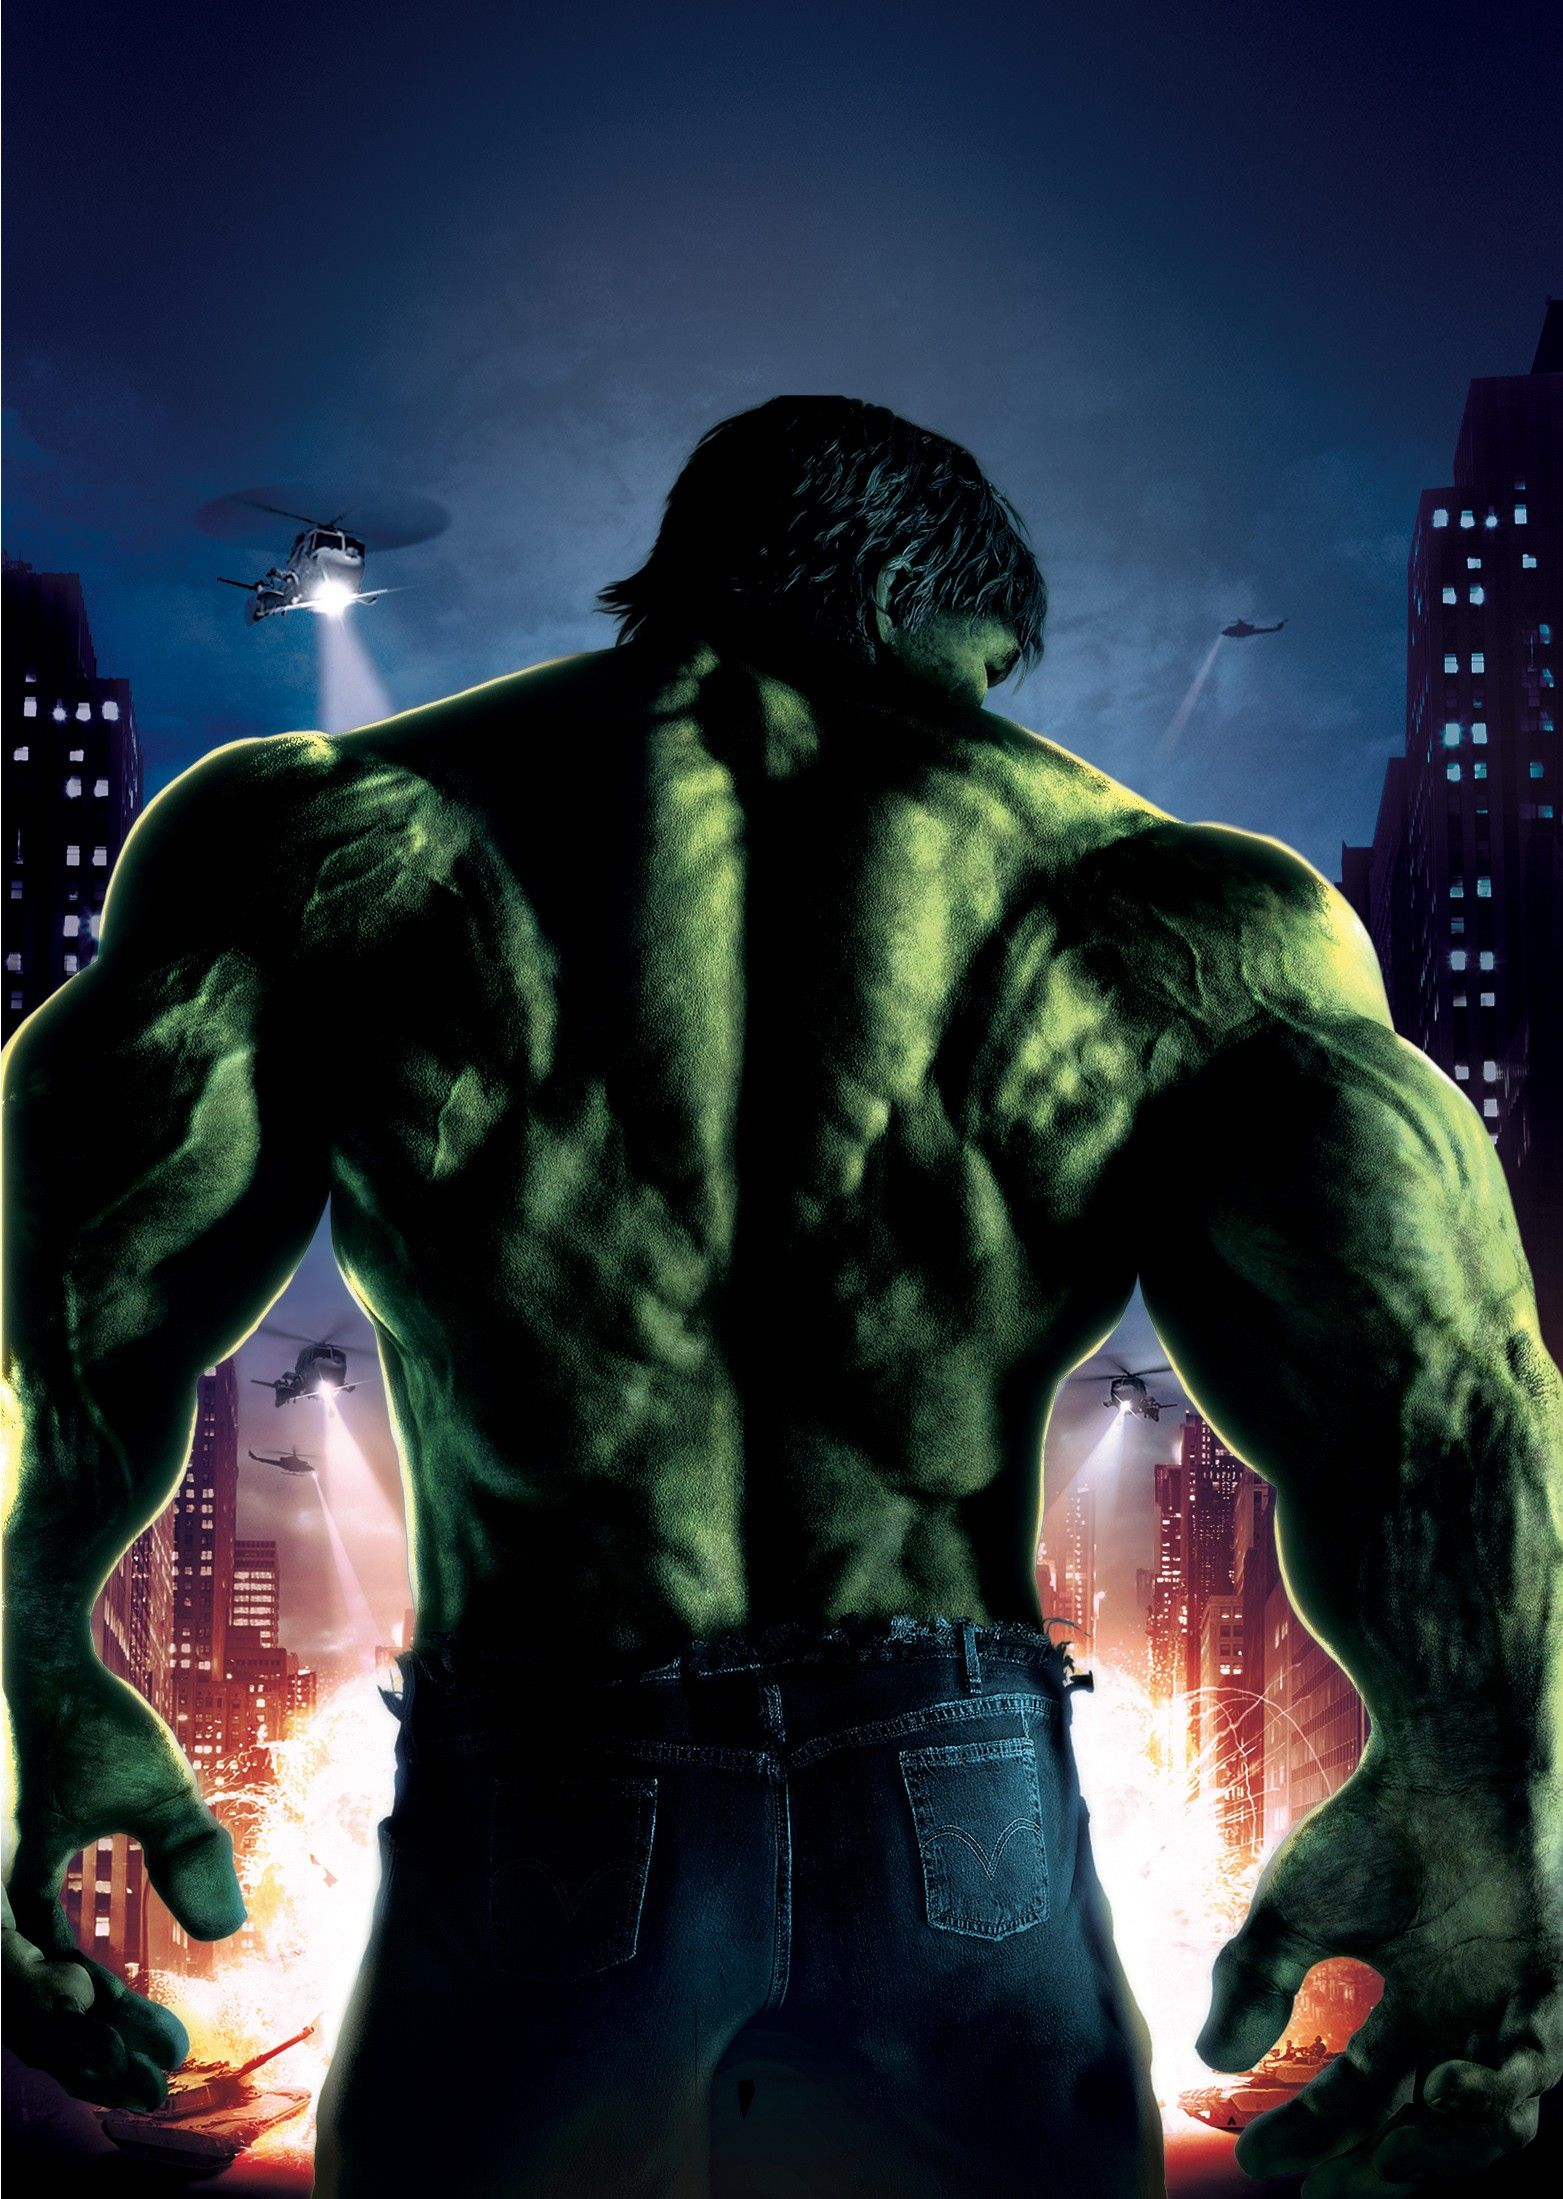 The Hulk Cell Phone Wallpapers Top Free The Hulk Cell